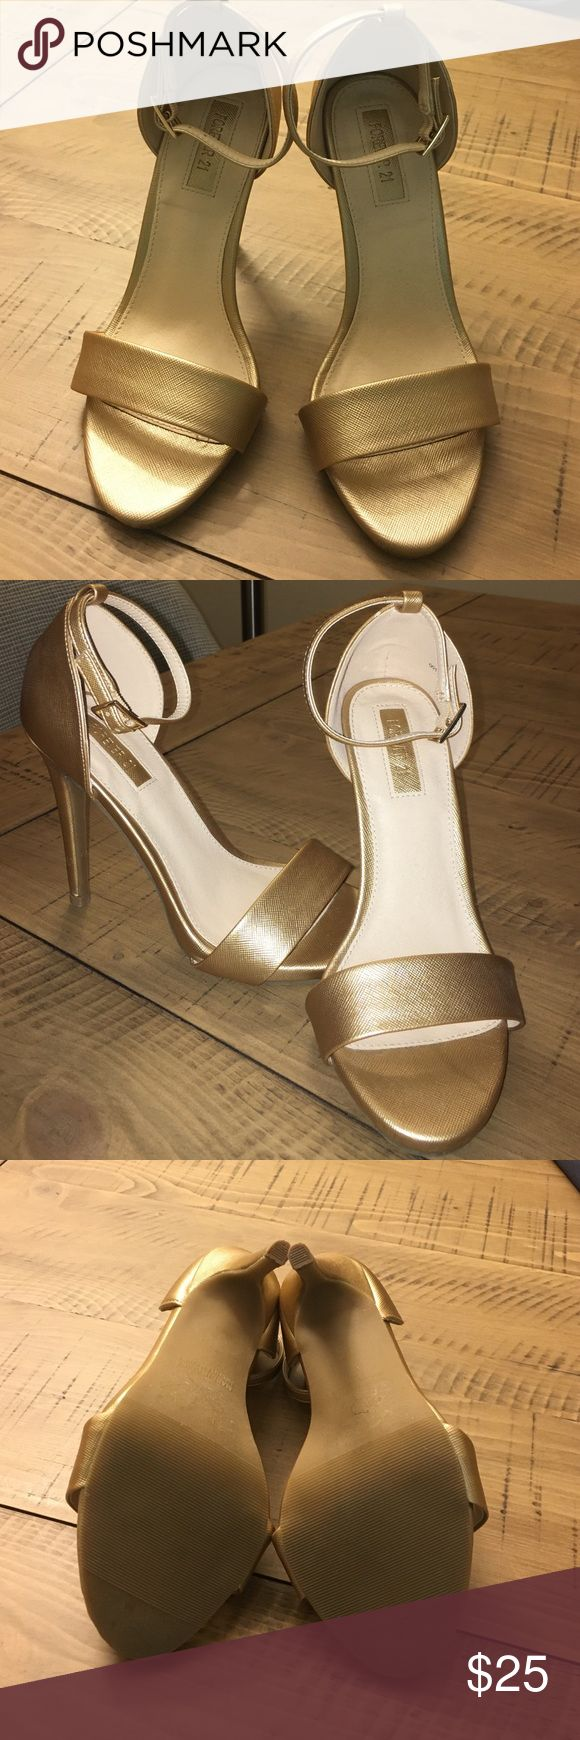 NWOT gold sandal heels Gorgeous metallic gold color heels. Brand new and never worn. Heel height is 4inches. Straps around ankles. Comes from a pet and smoke free home. True to size. Forever 21 Shoes Heels